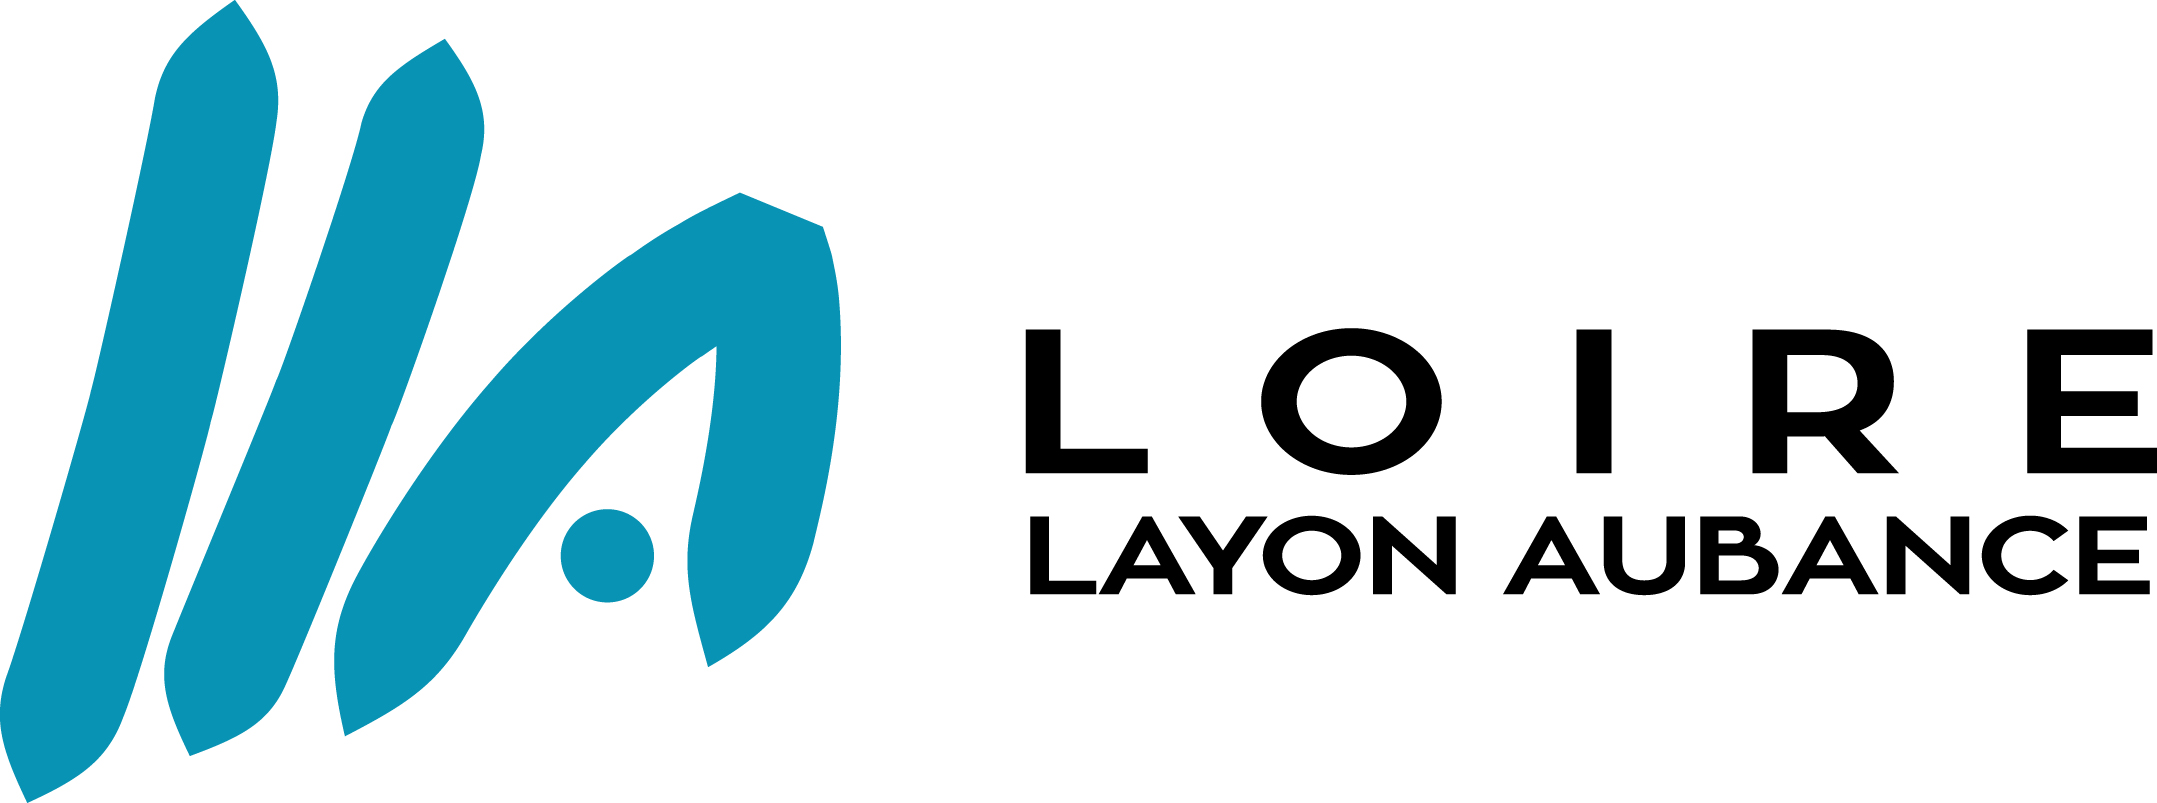 LLA logo horizontal couleur